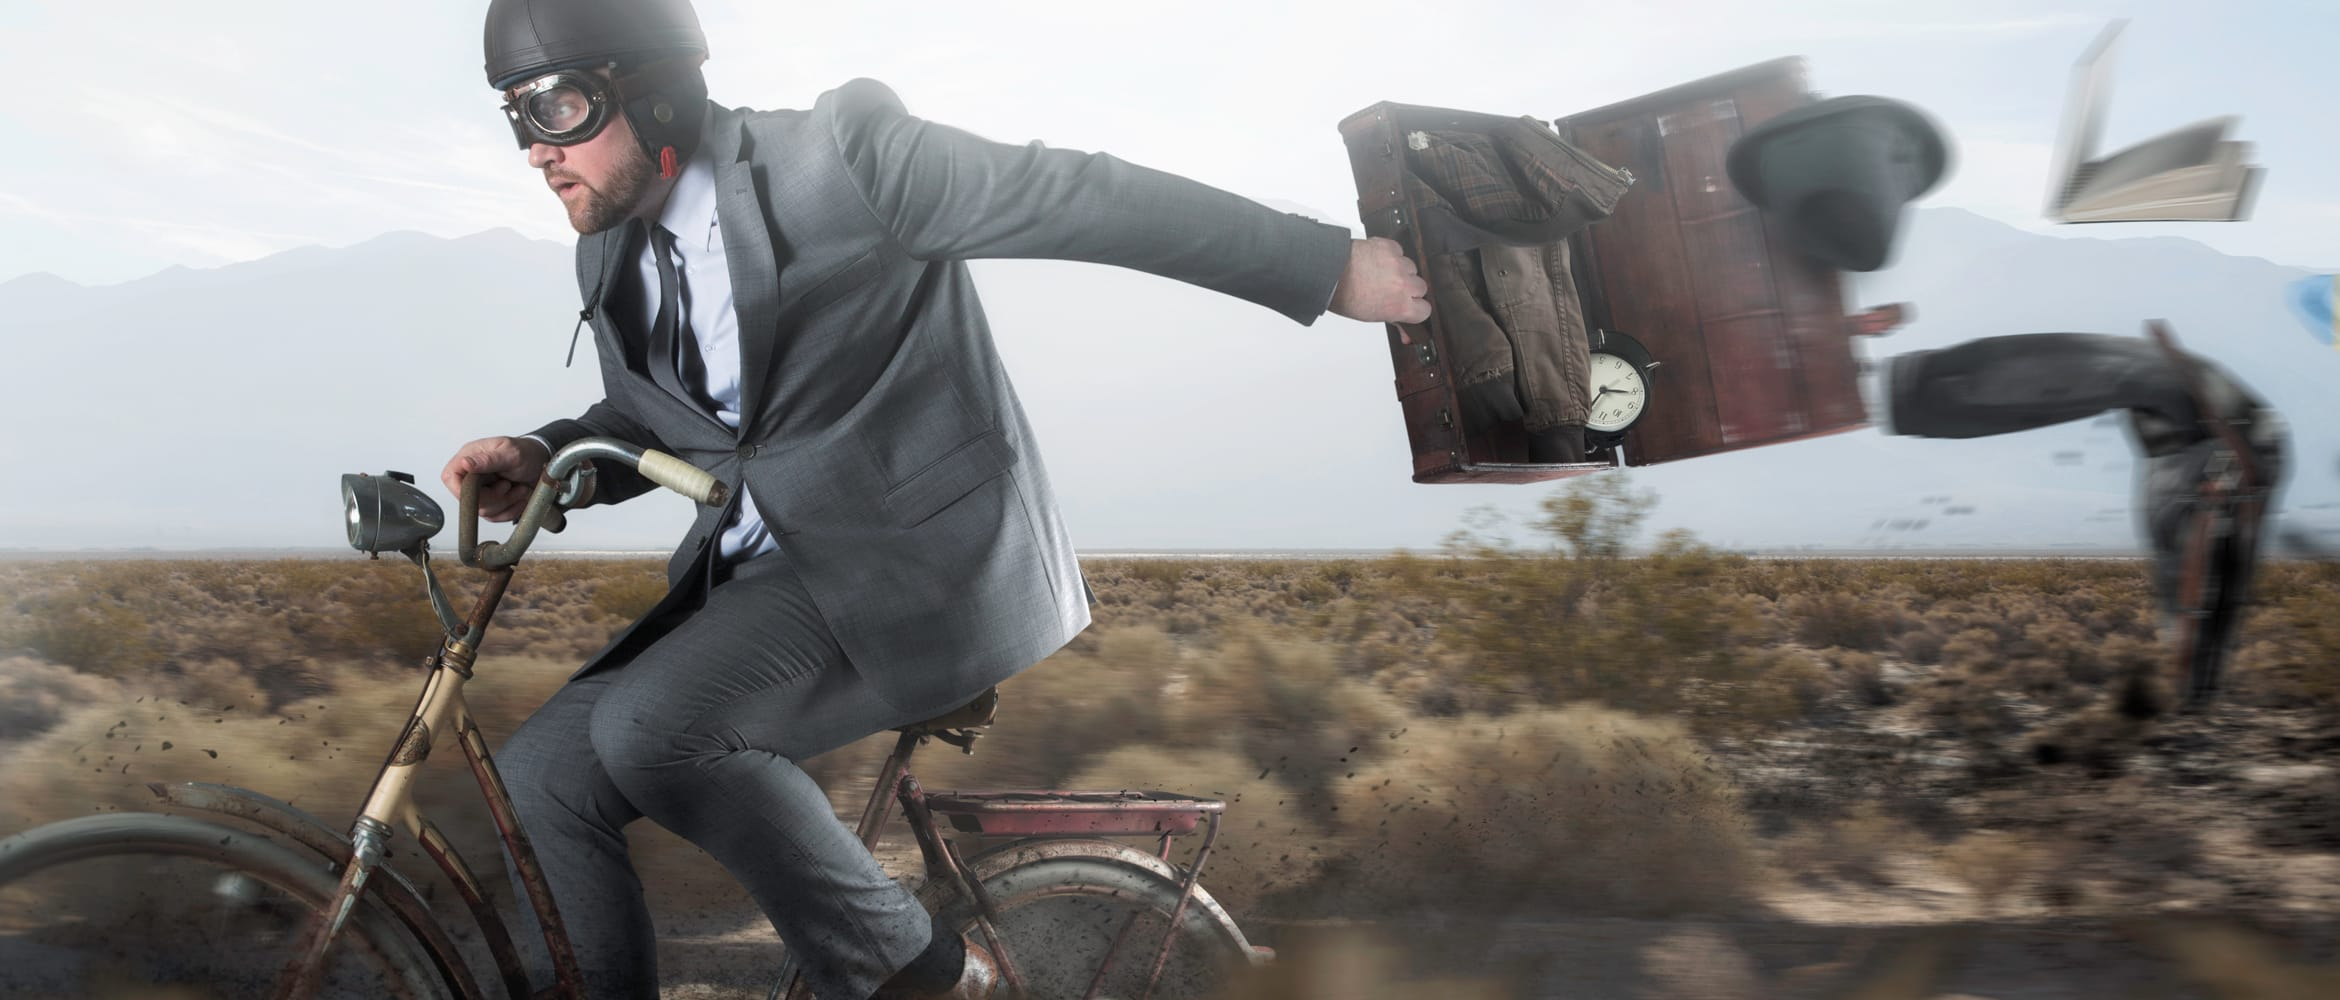 man in a suit and helmet rides a bike while his briefcase blows open